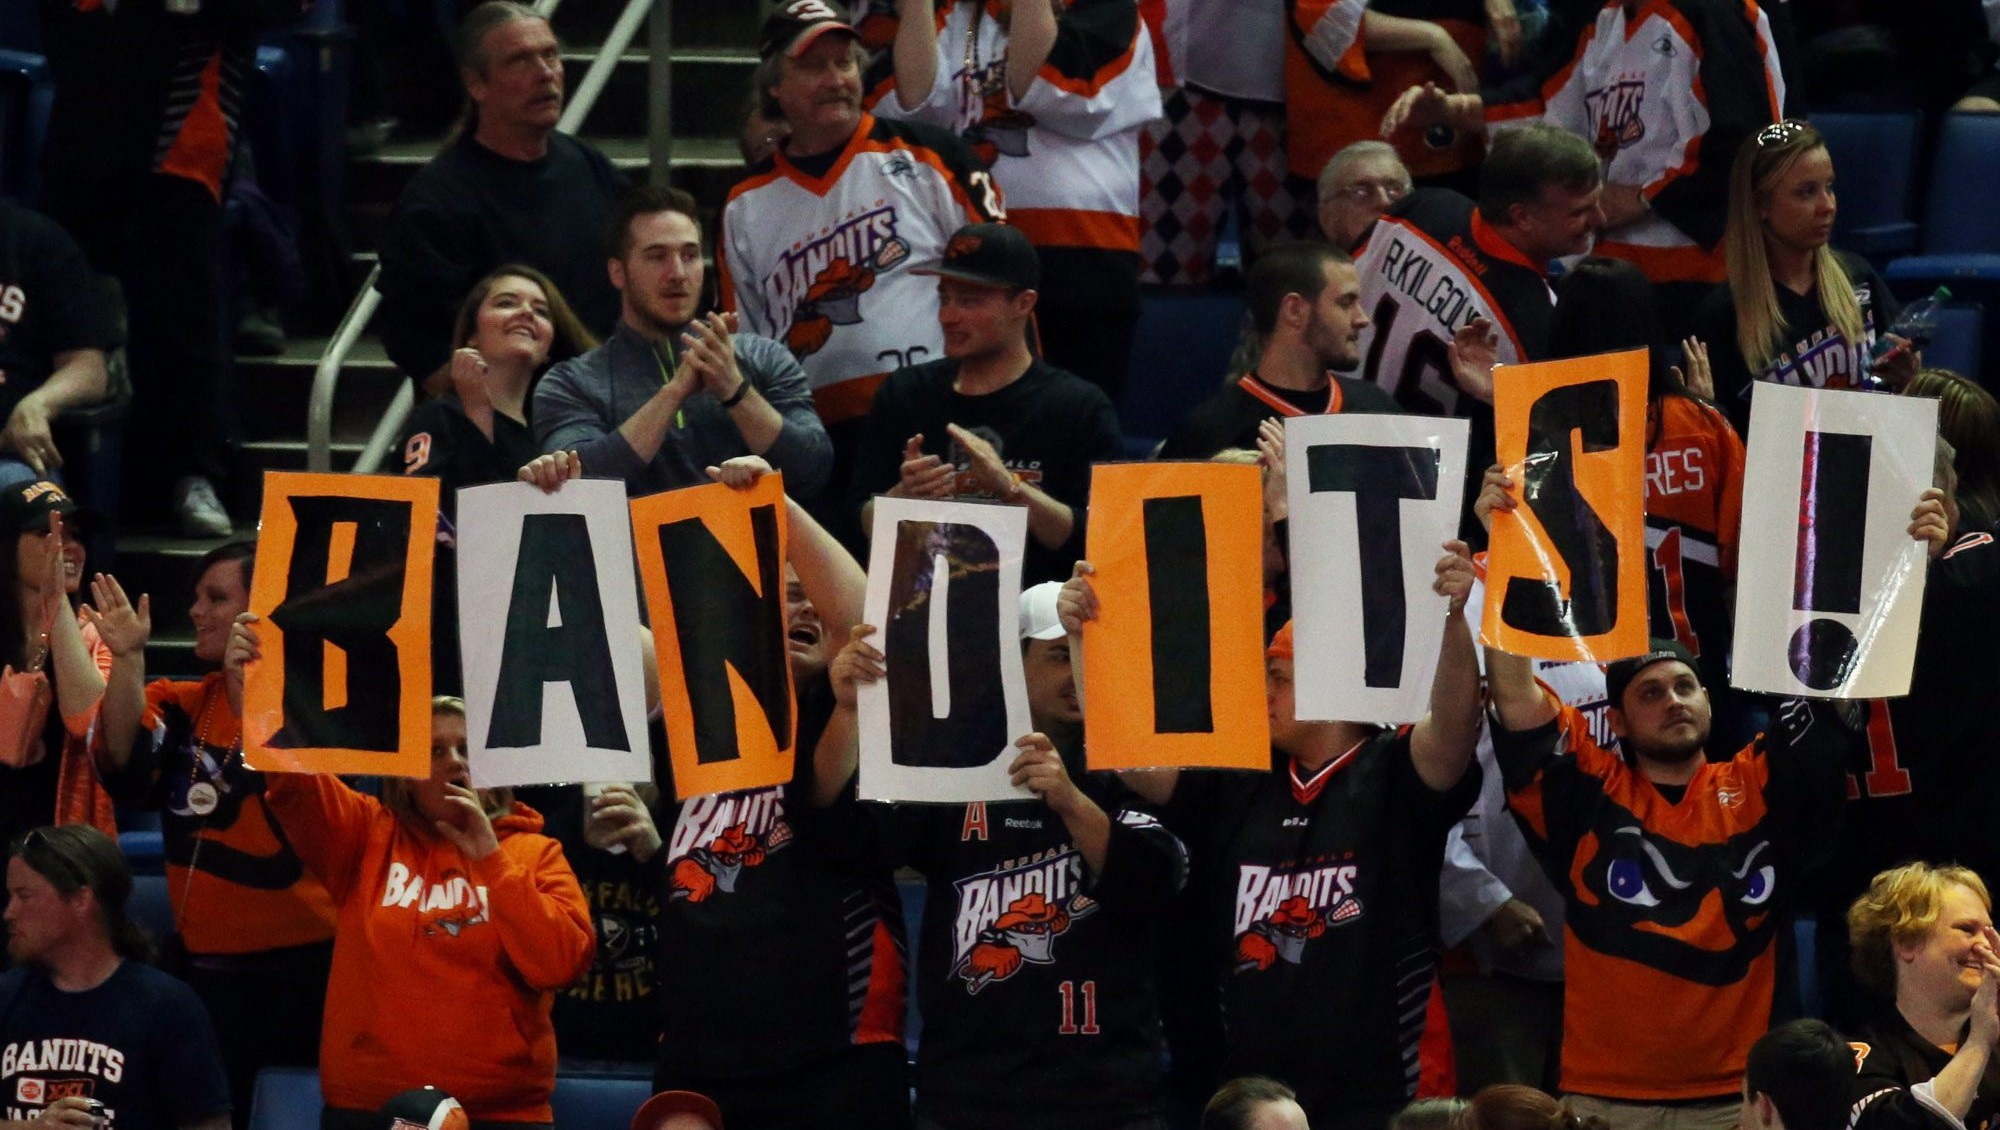 Bandits fans cheer on their team at KeyBank Center. (James P. McCoy/ Buffalo News file photo)